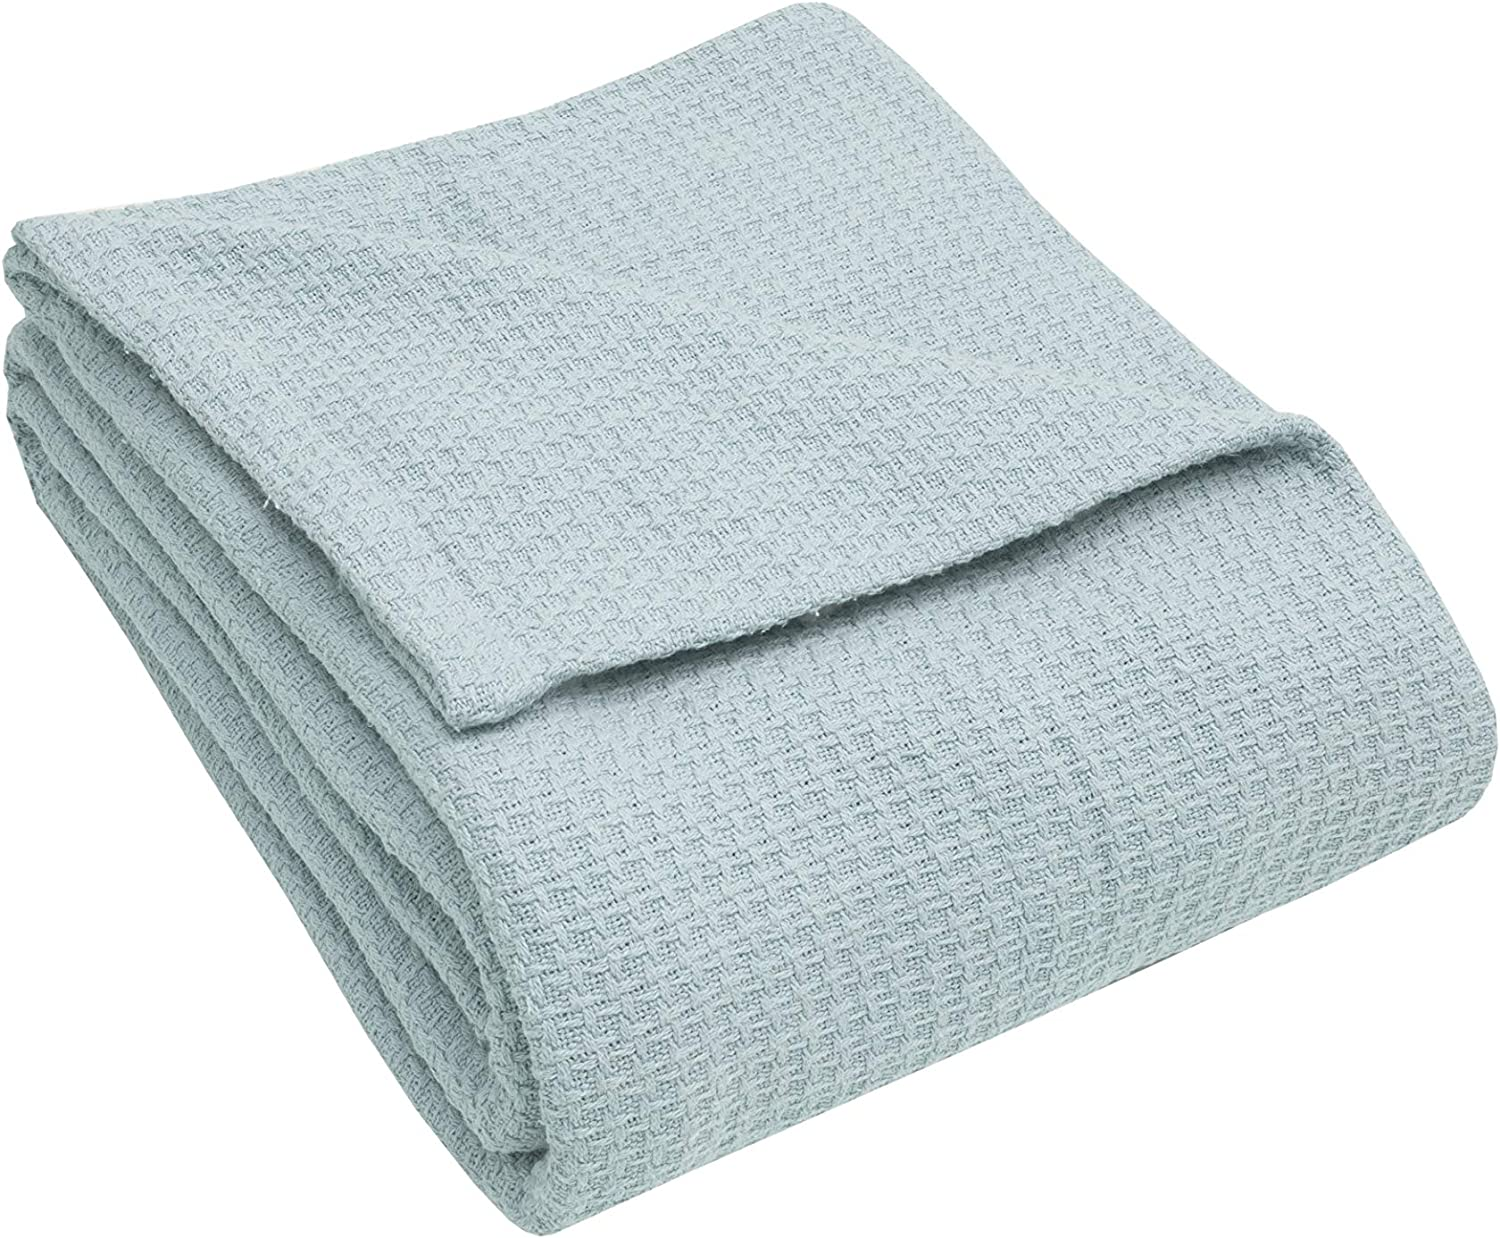 Elite Home Products Inc. Grand Hotel Cotton Blanket, Seaglass, King